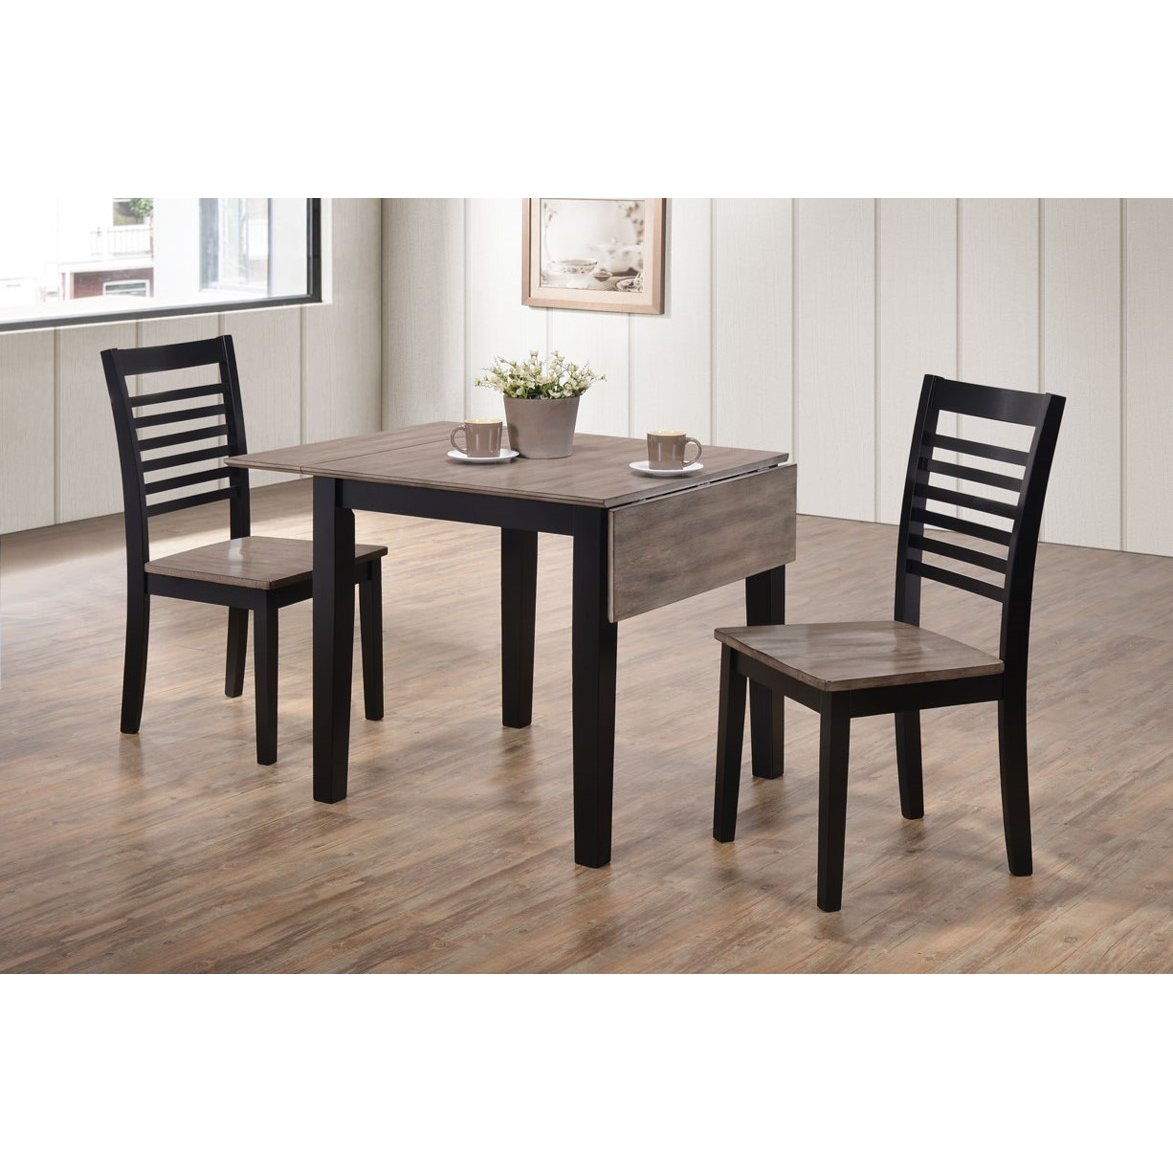 ... Clearance Ebony And Gray 3 Piece Drop Leaf Dining Set   South Beach  Collection